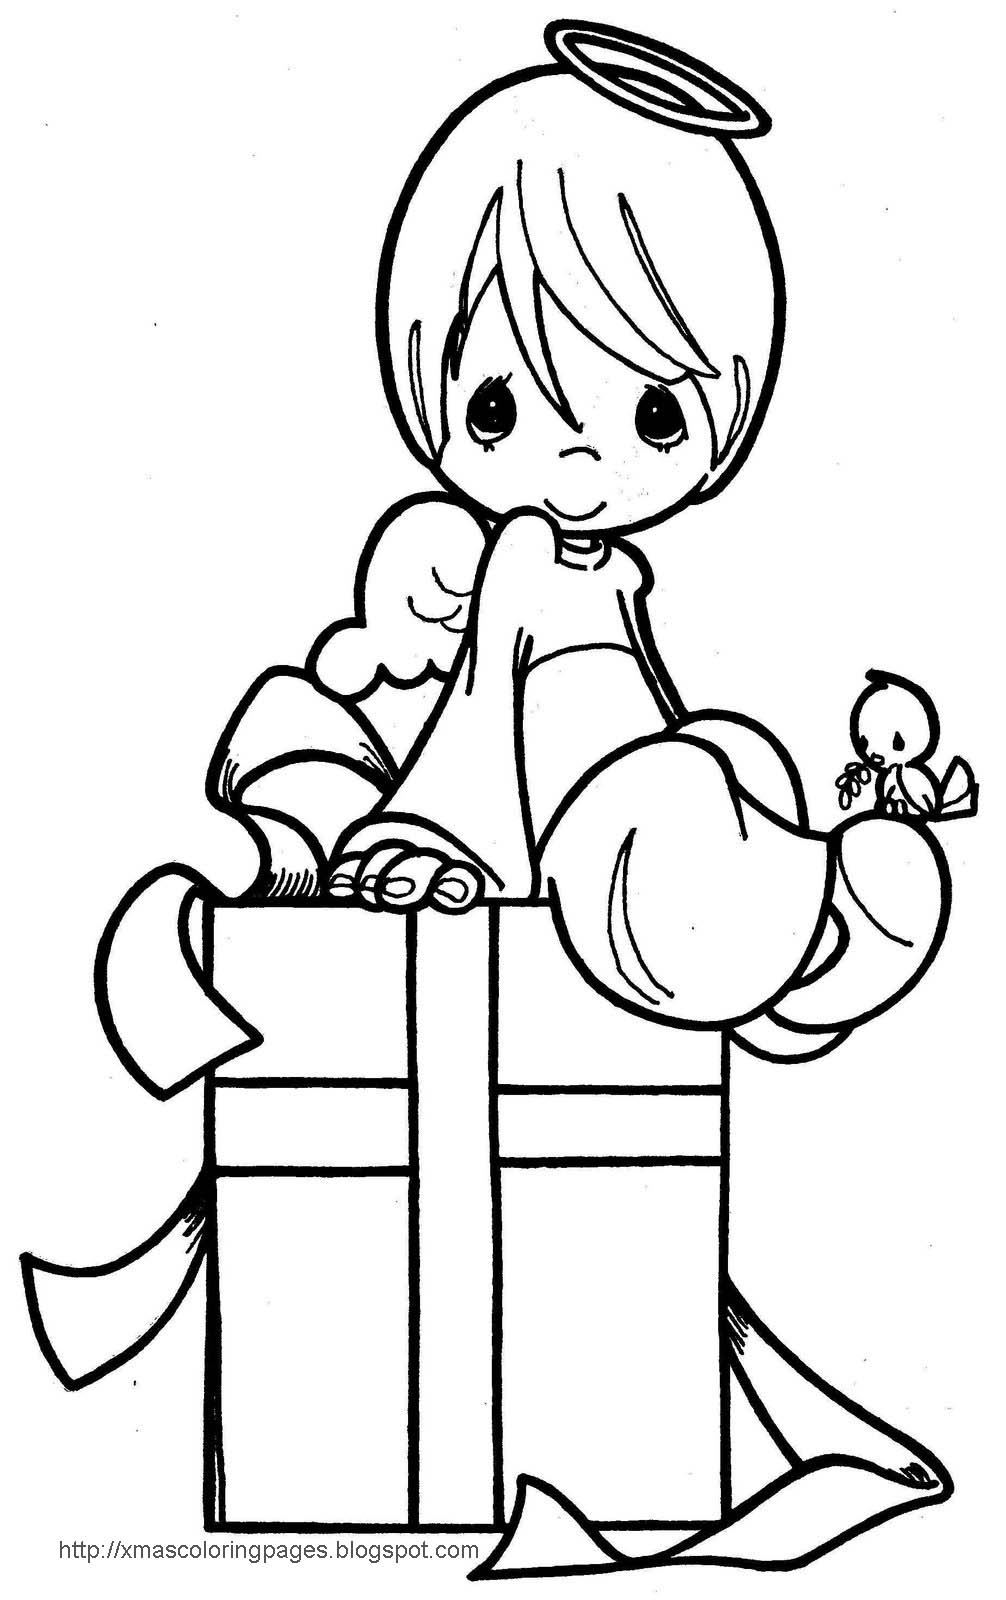 angel pictures to color angels coloring page graphicsfairy pictures color to angel